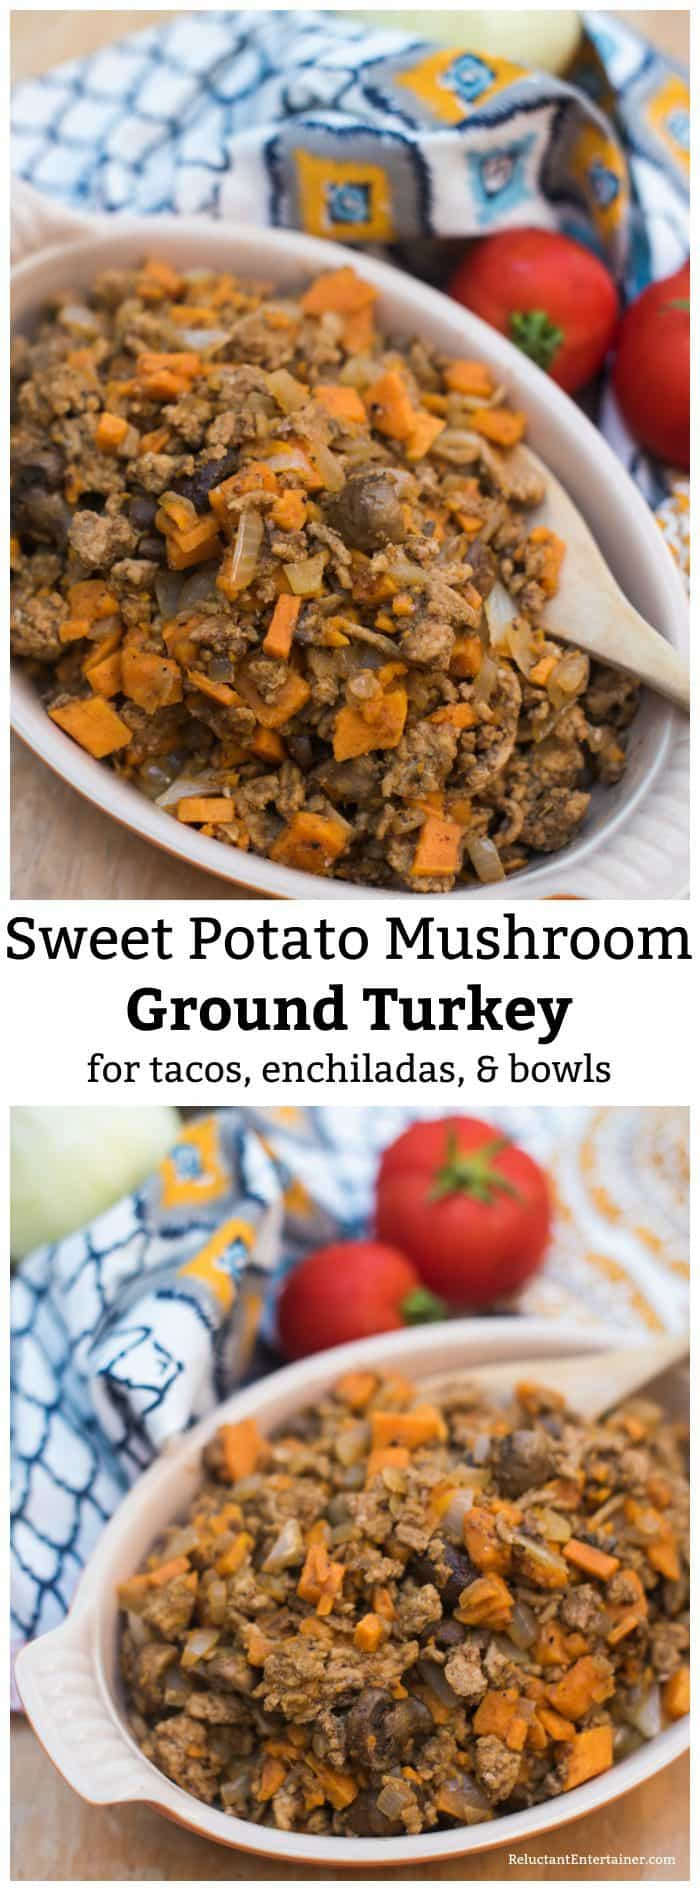 Sweet Potato Mushroom Ground Turkey